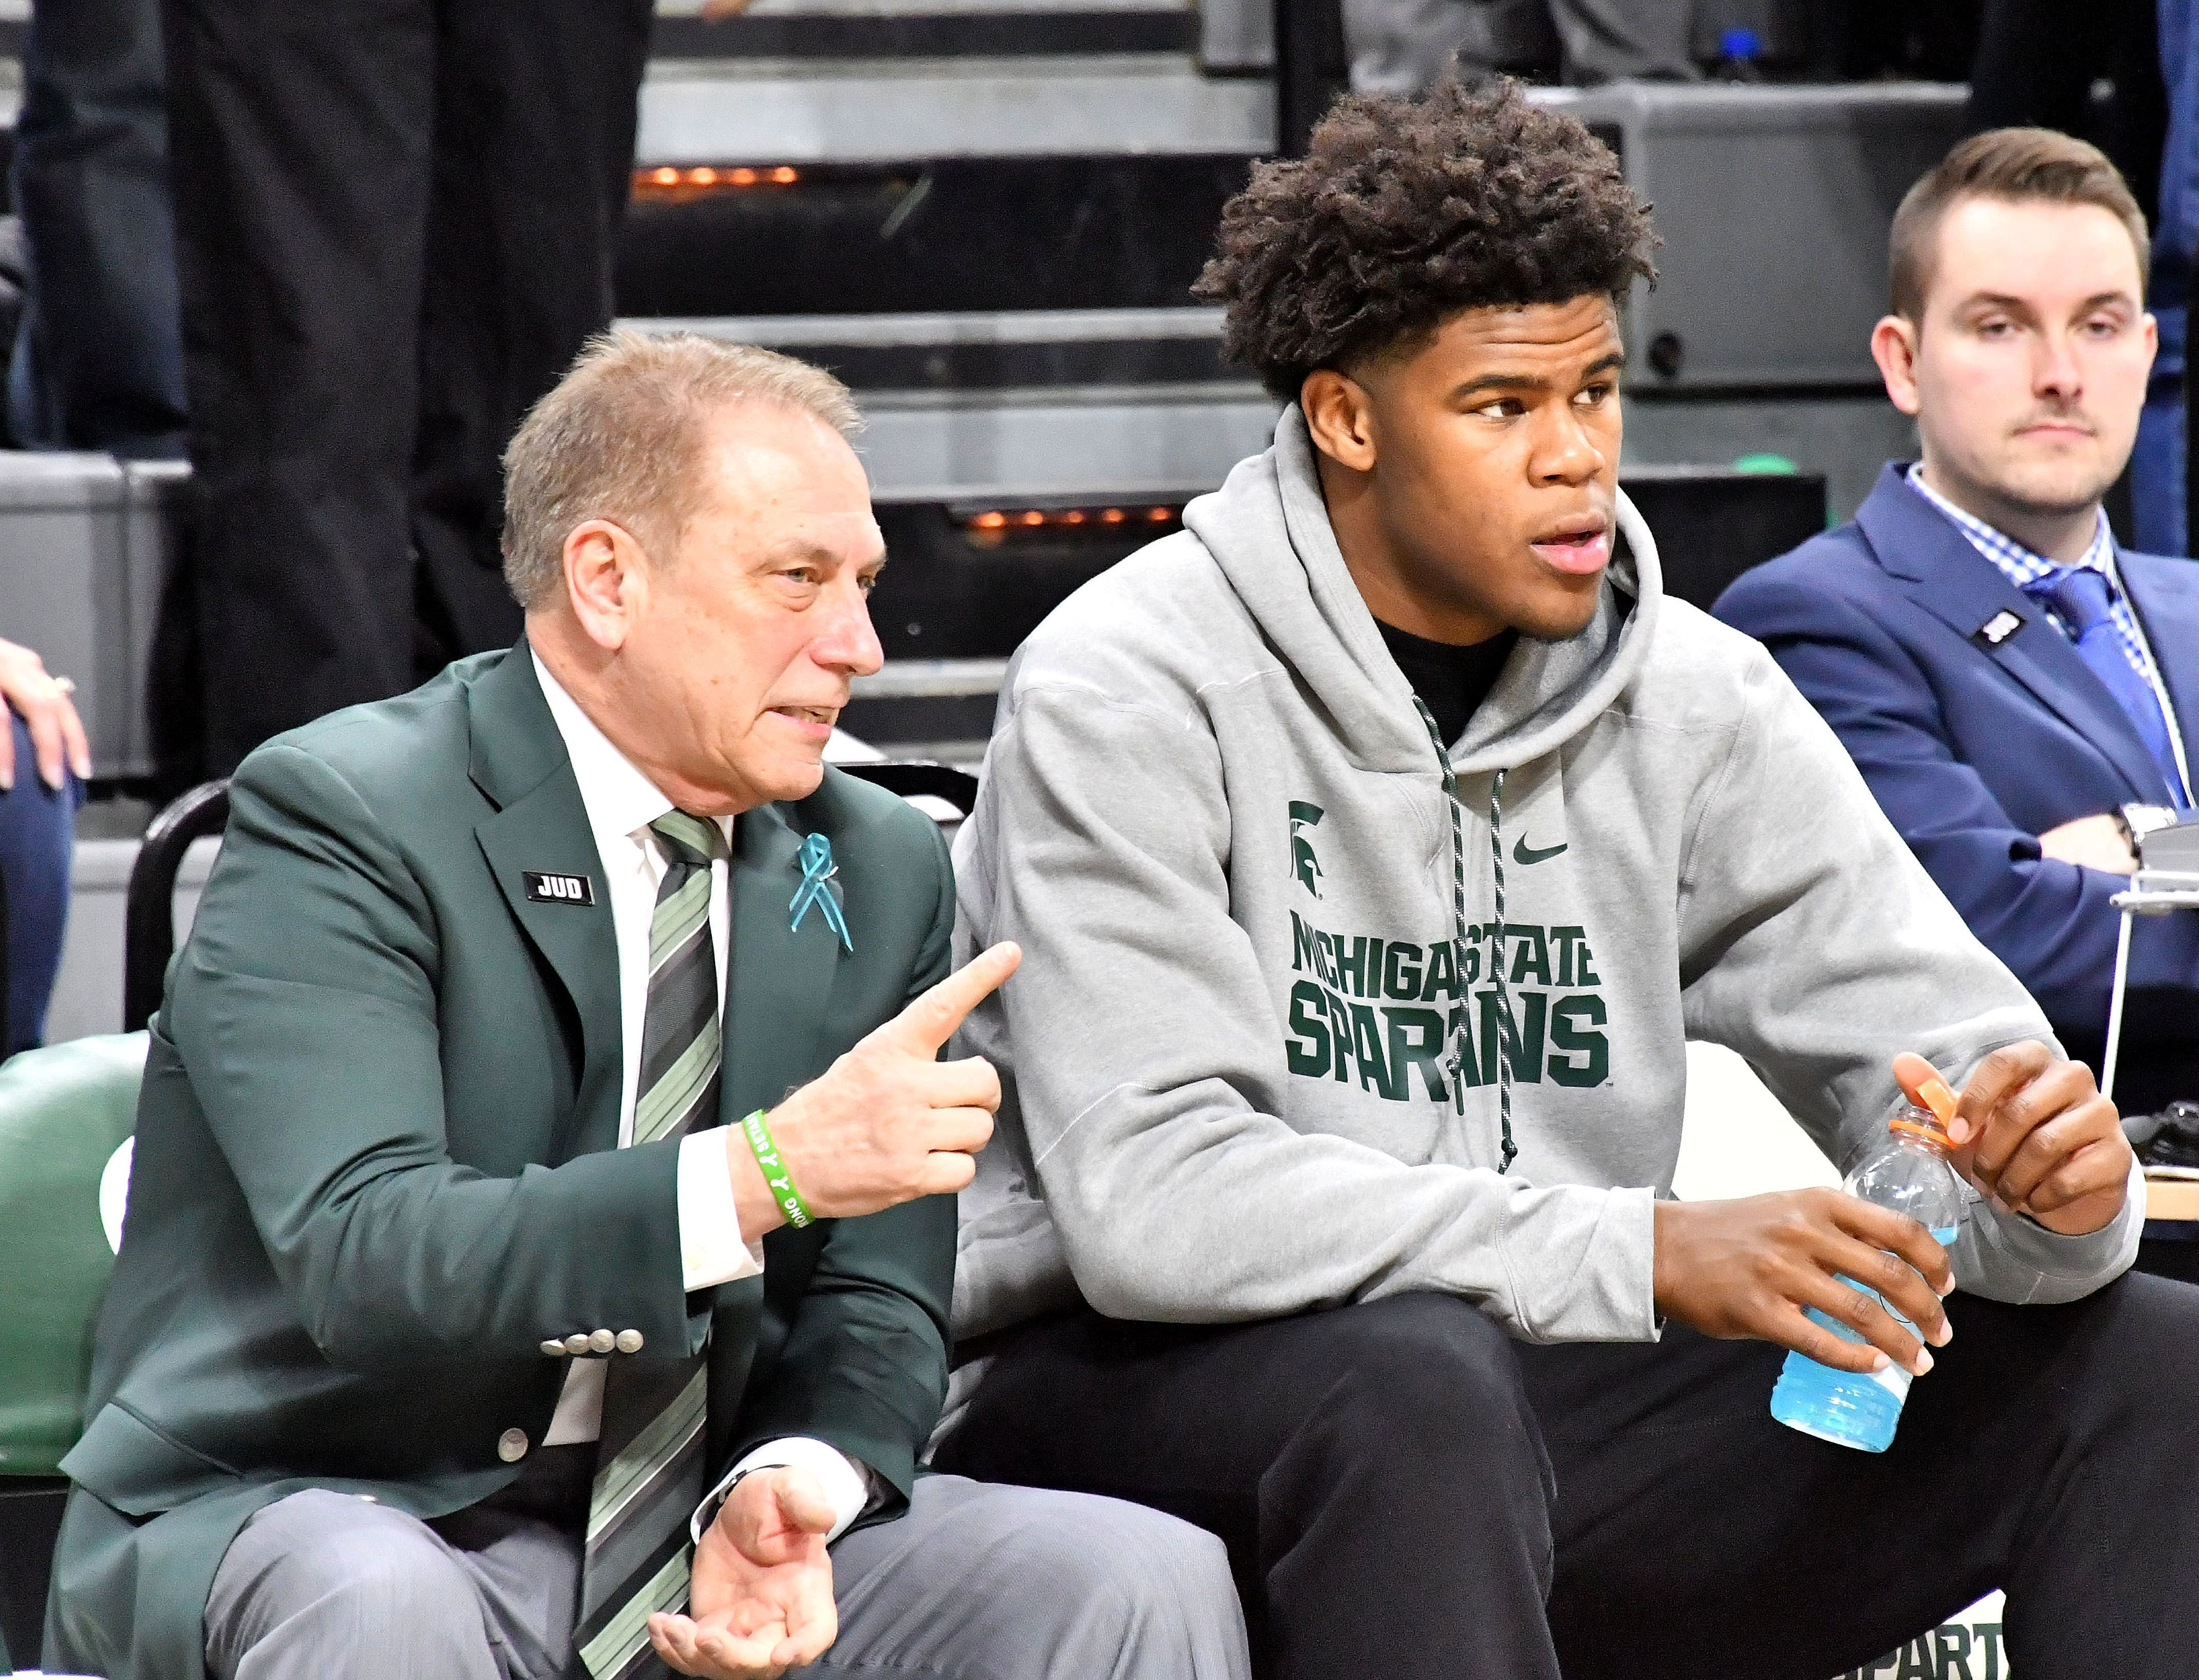 Ranked the No. 2 player in the nation, according to the 247Sports.com composite rankings, Vernon Carey Jr. has cut Miami and Kentucky from his final five. He had taken official visits to each of his final five schools then took a second official visit to Michigan State Nov. 9-10.